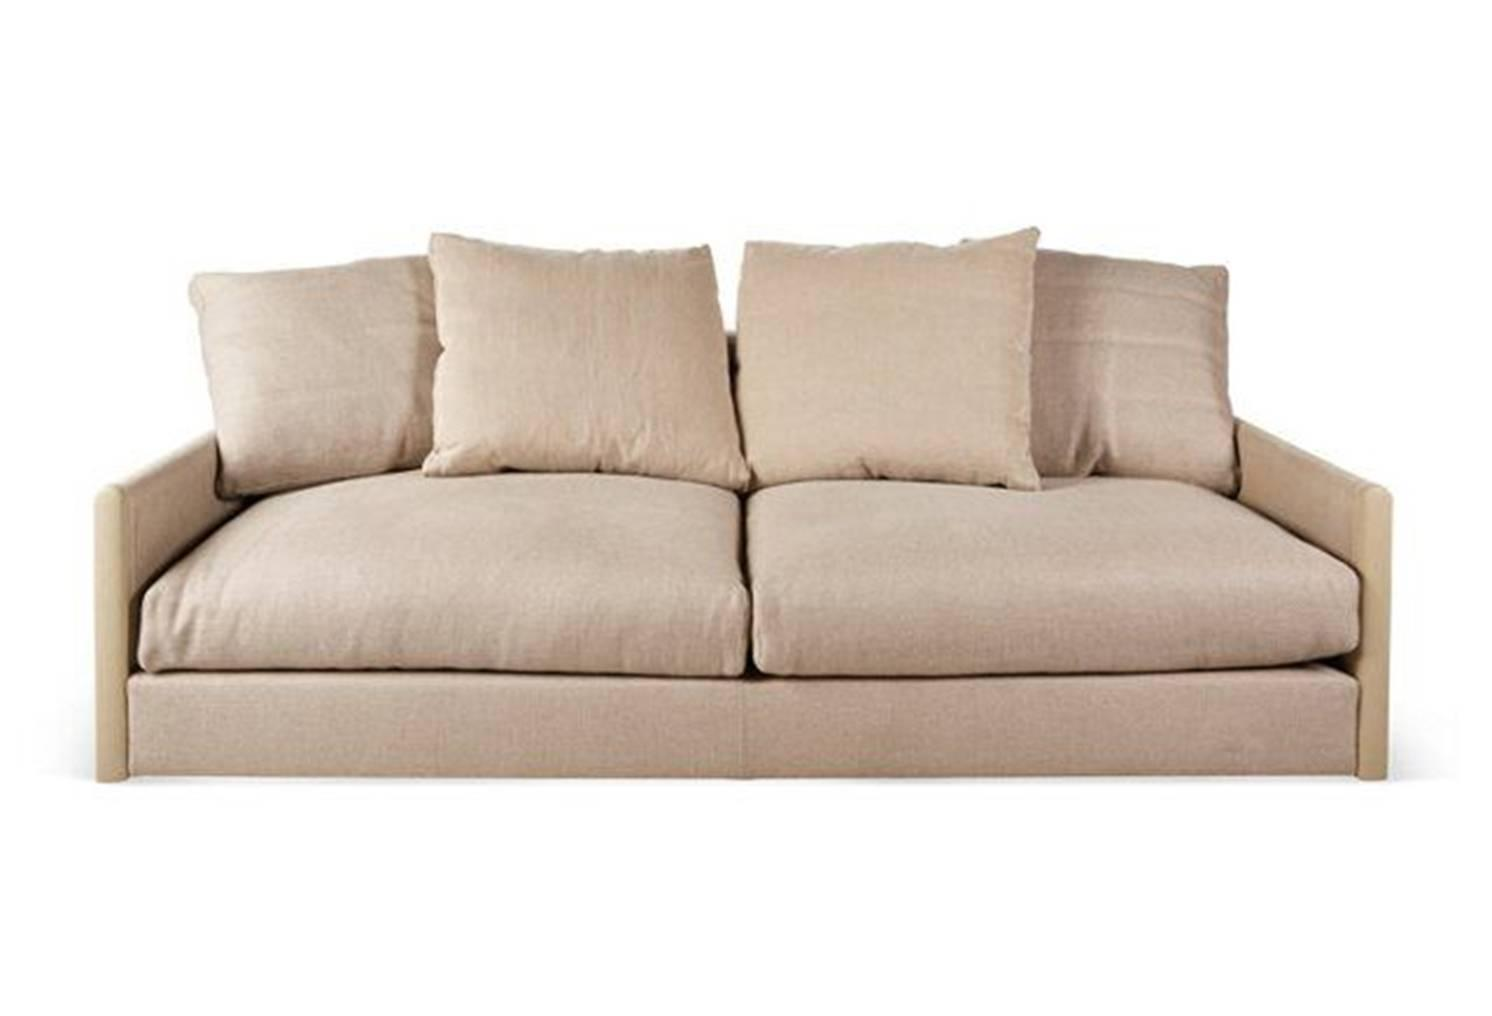 Giorgetti wally sofa in fabric for sale at 1stdibs for Fabric couches for sale